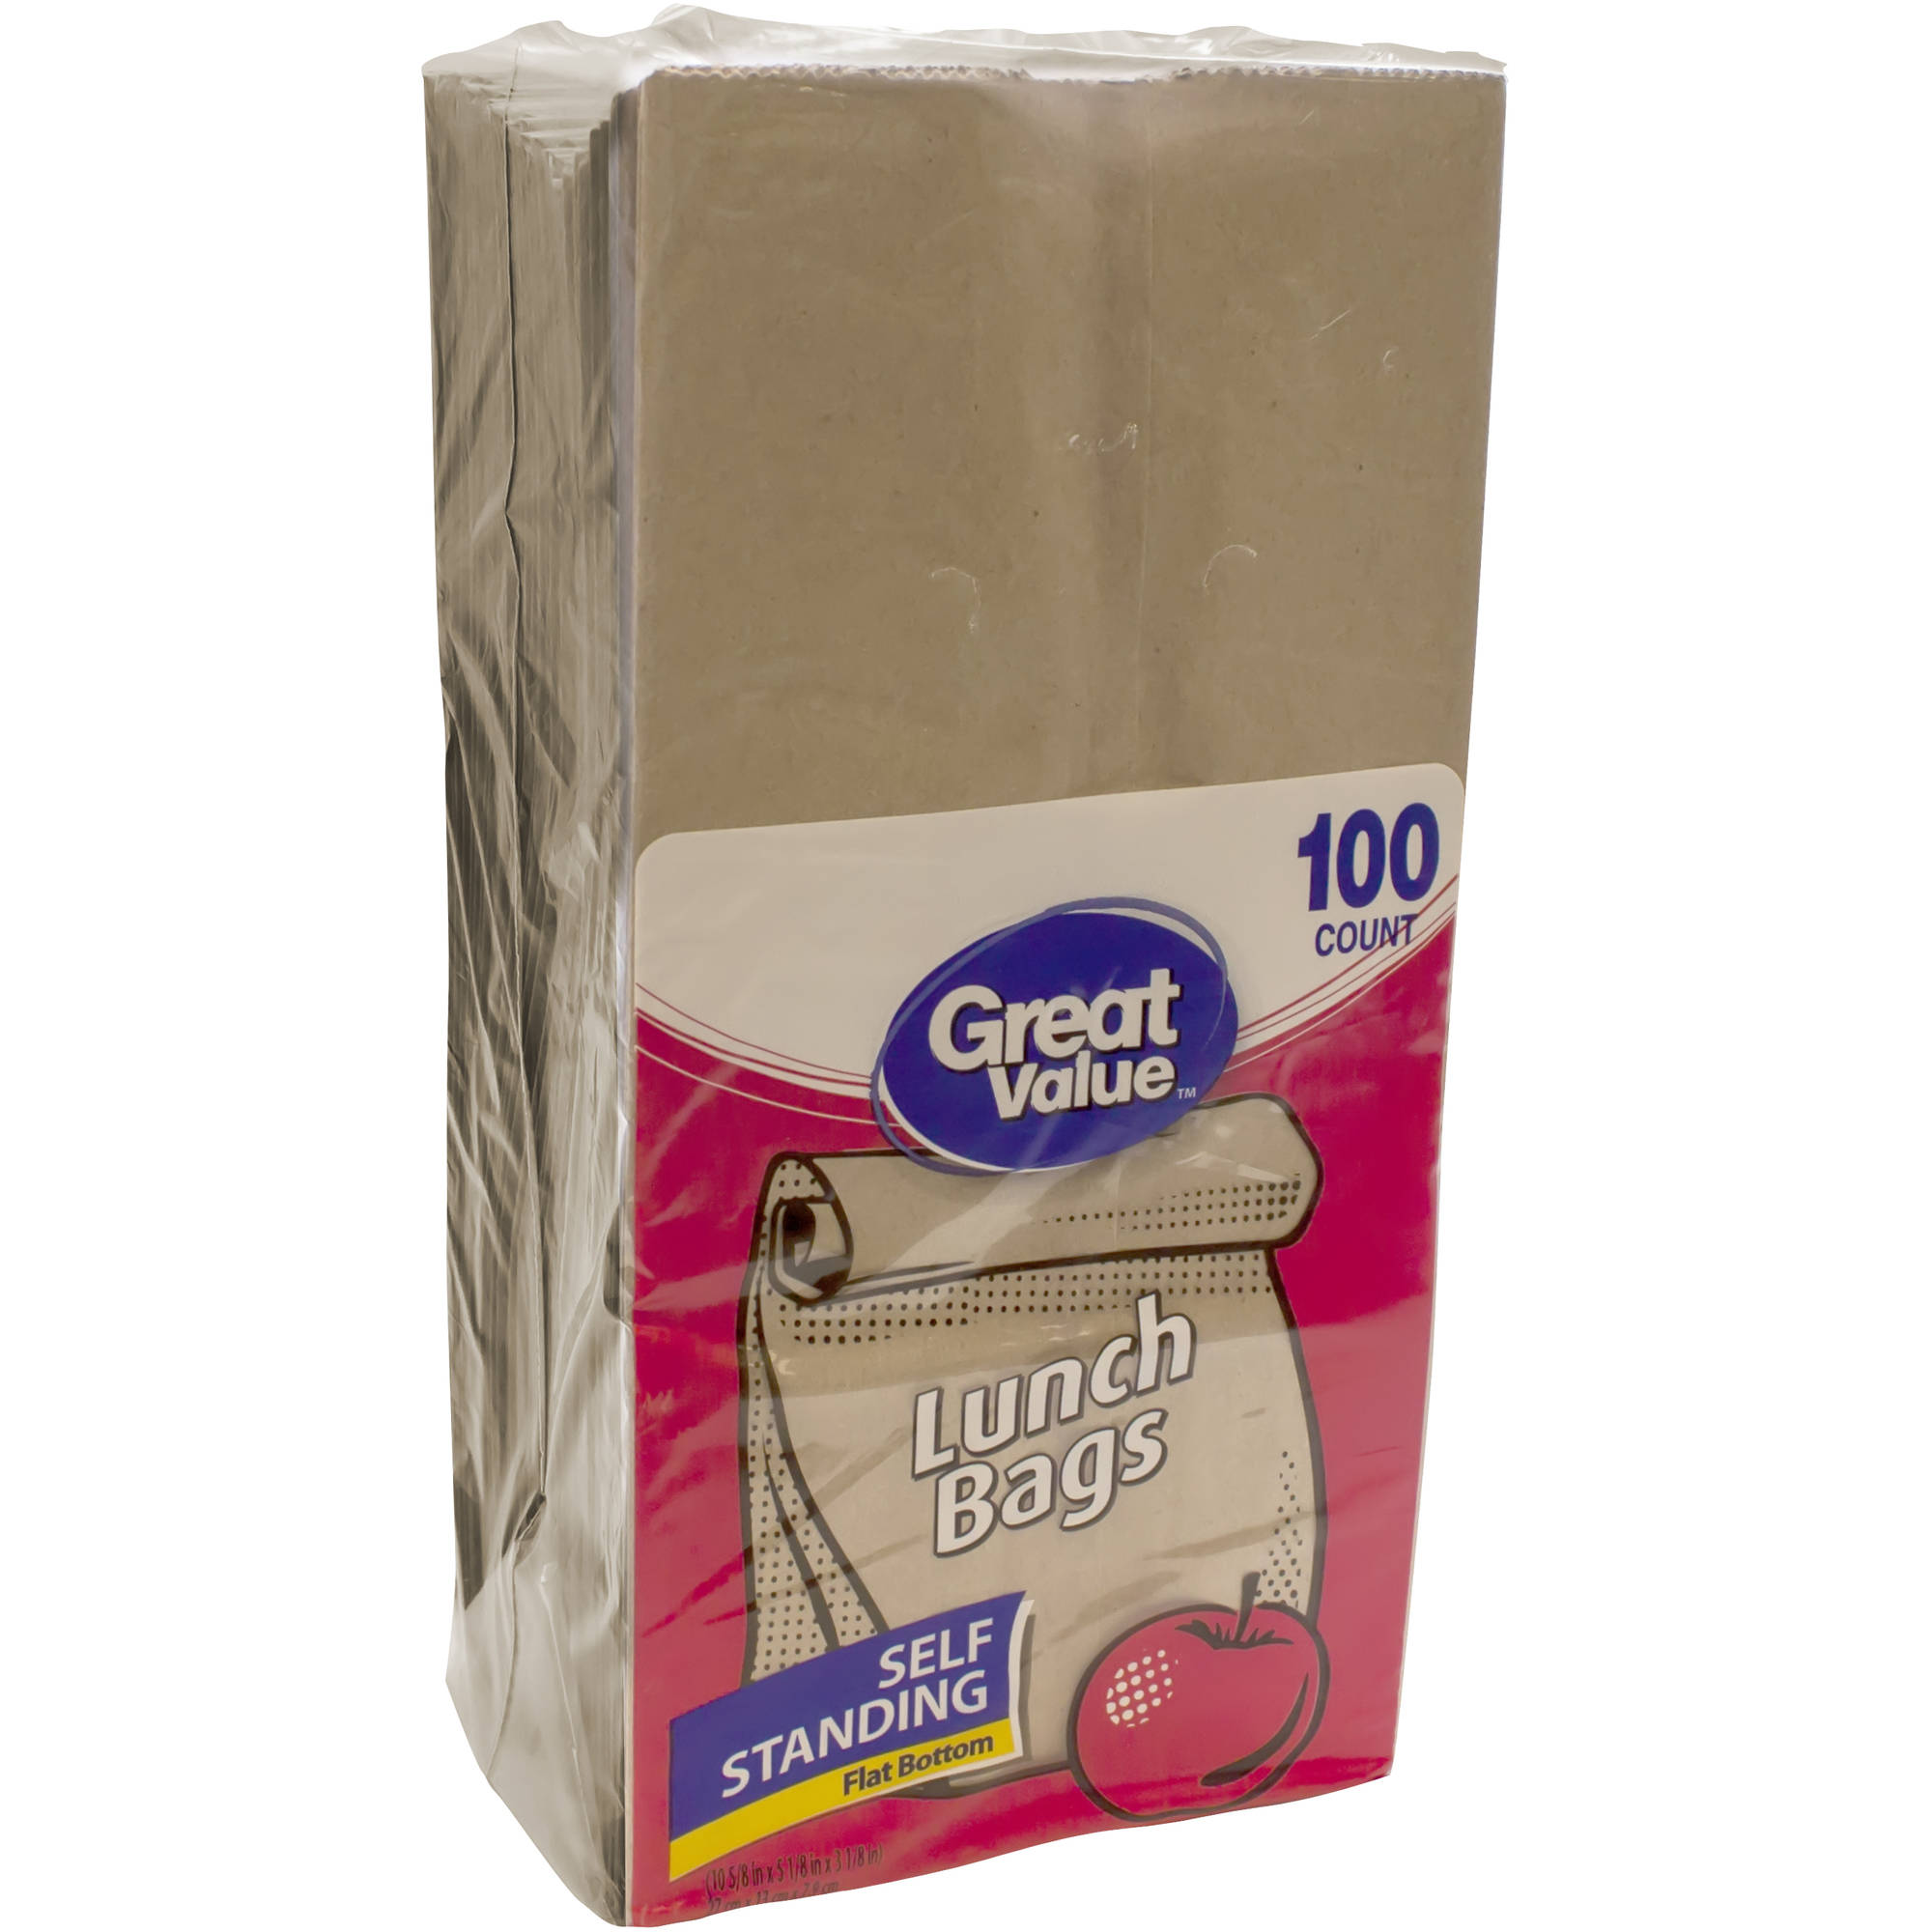 Great Value Lunch Bags, 100 count